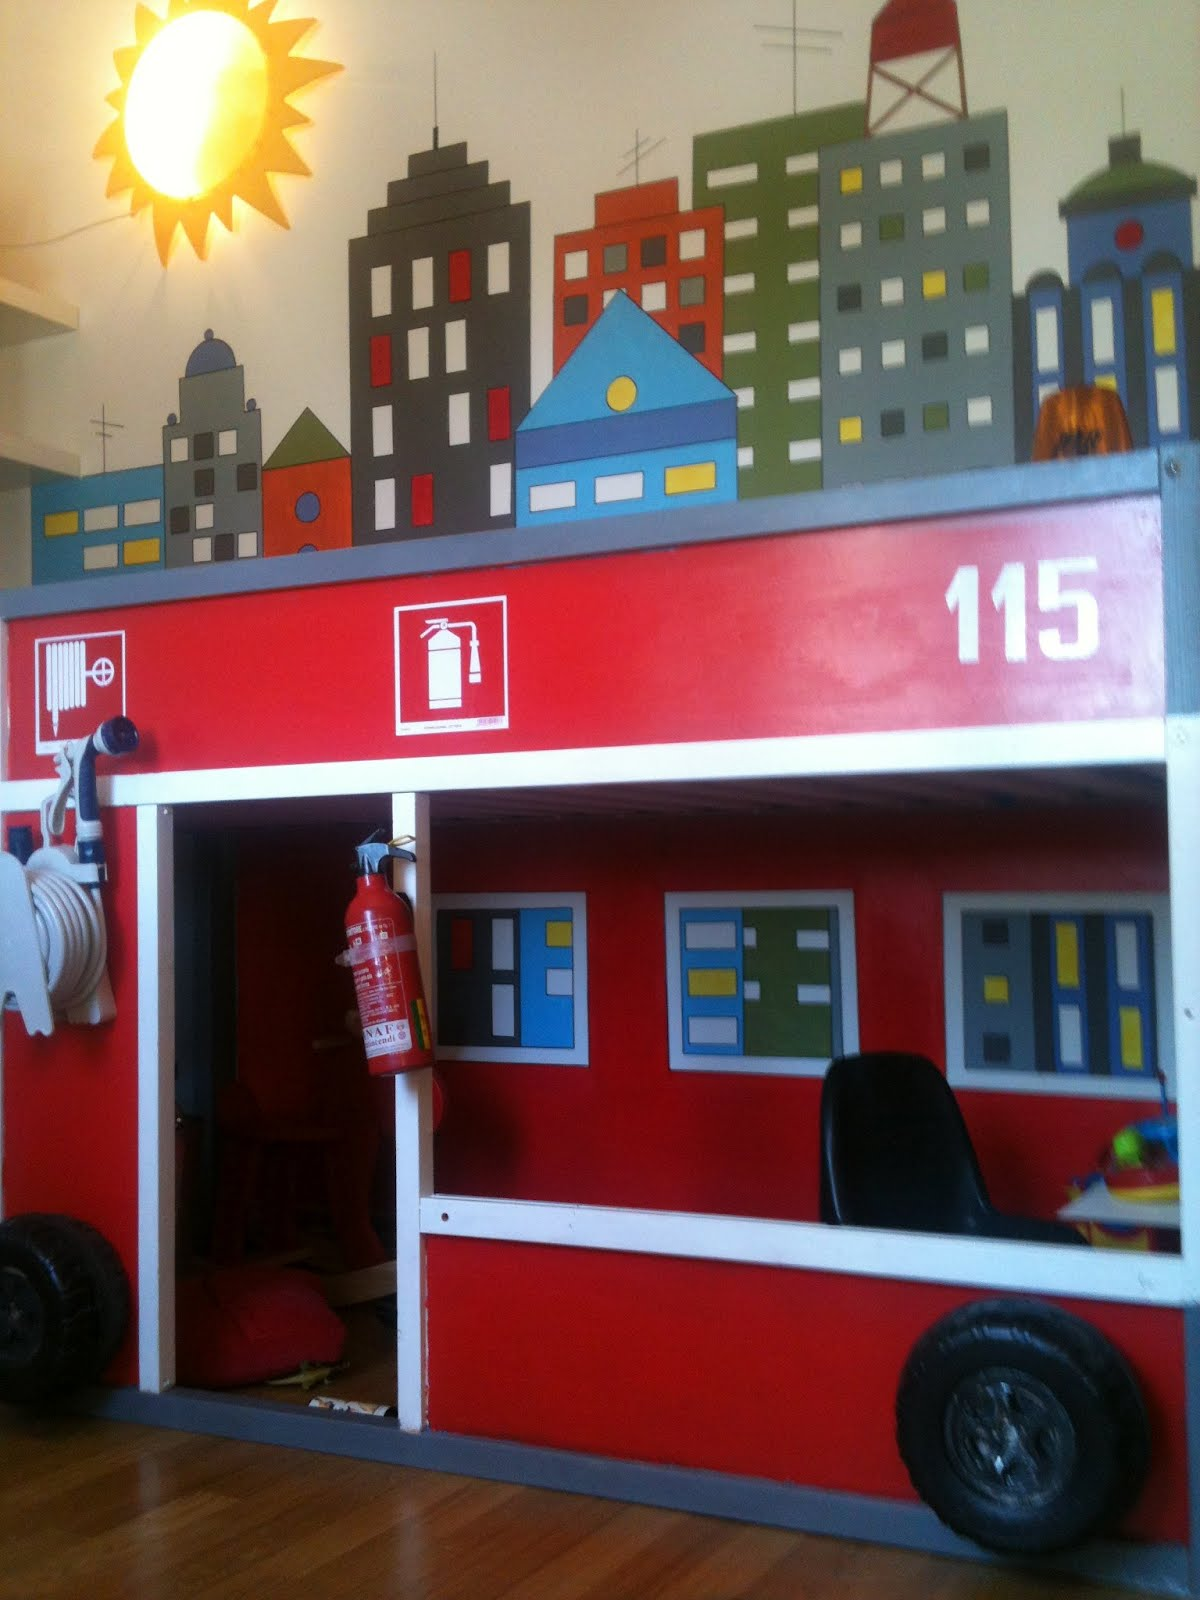 Amazing Bedroom Hacks How To Transform An Ikea Kura Bed Into A Firetruck